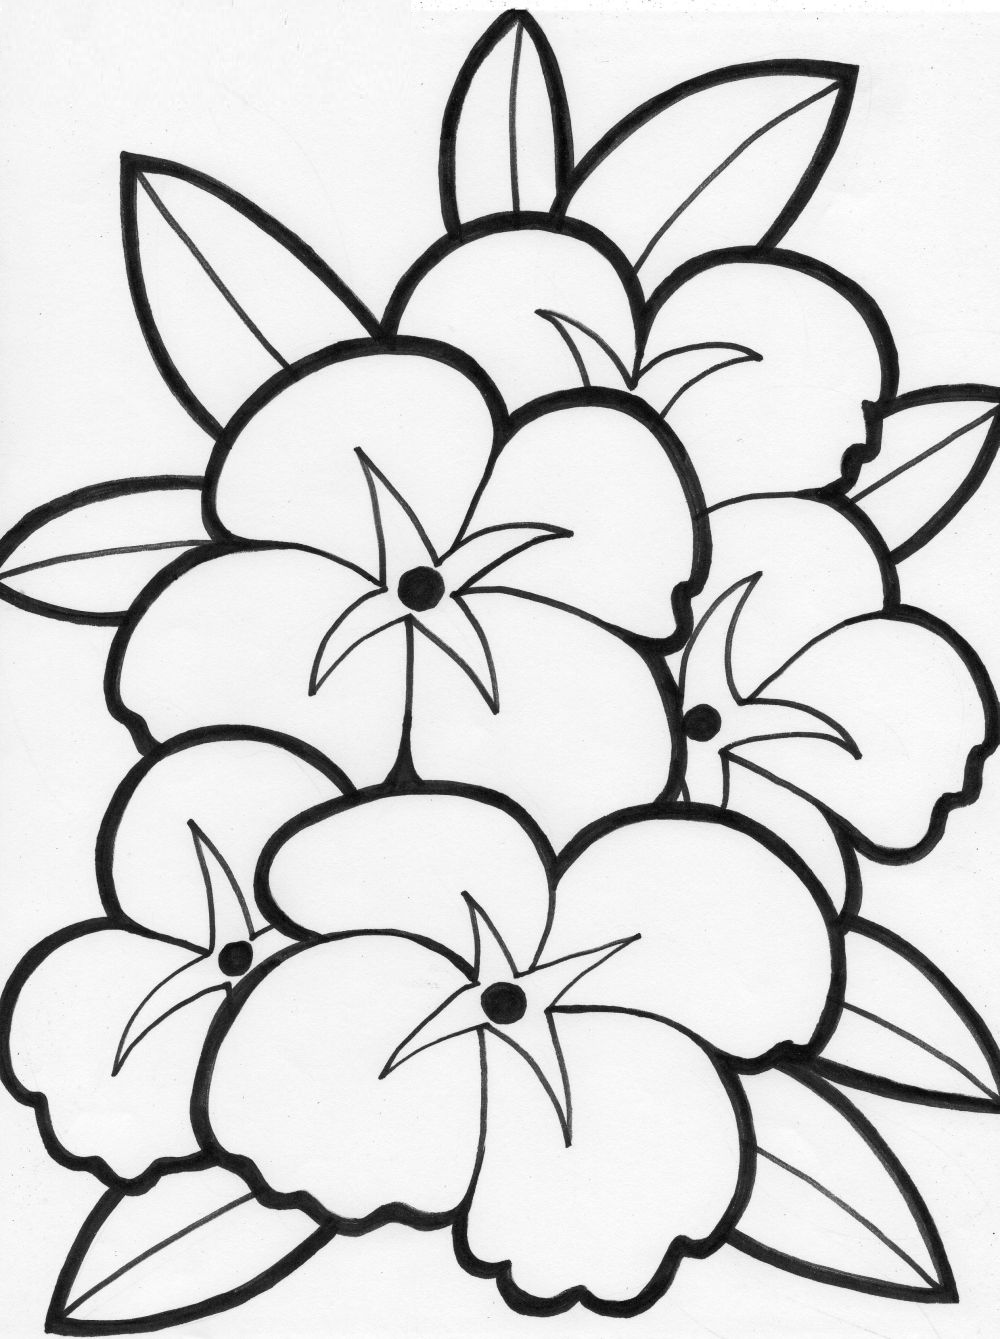 Flowers Coloring Pages Free Printable Download Coloring Pages Hub Printable Flower Coloring Pages Flower Coloring Sheets Mandala Coloring Pages